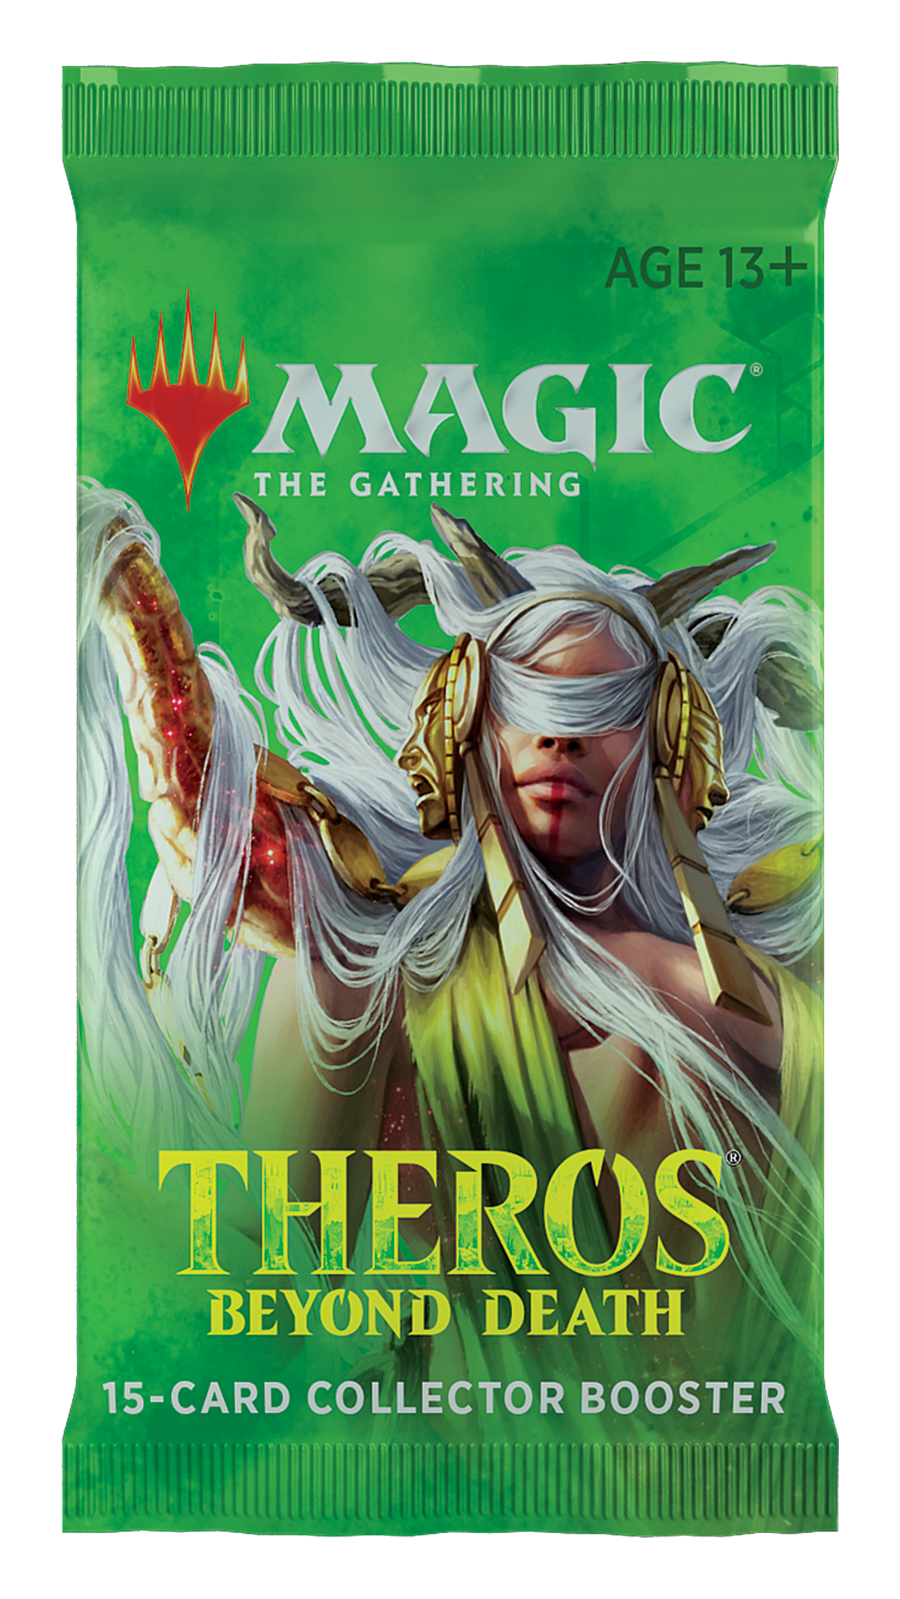 Magic The Gathering: Theros Beyond Death Collector Booster image